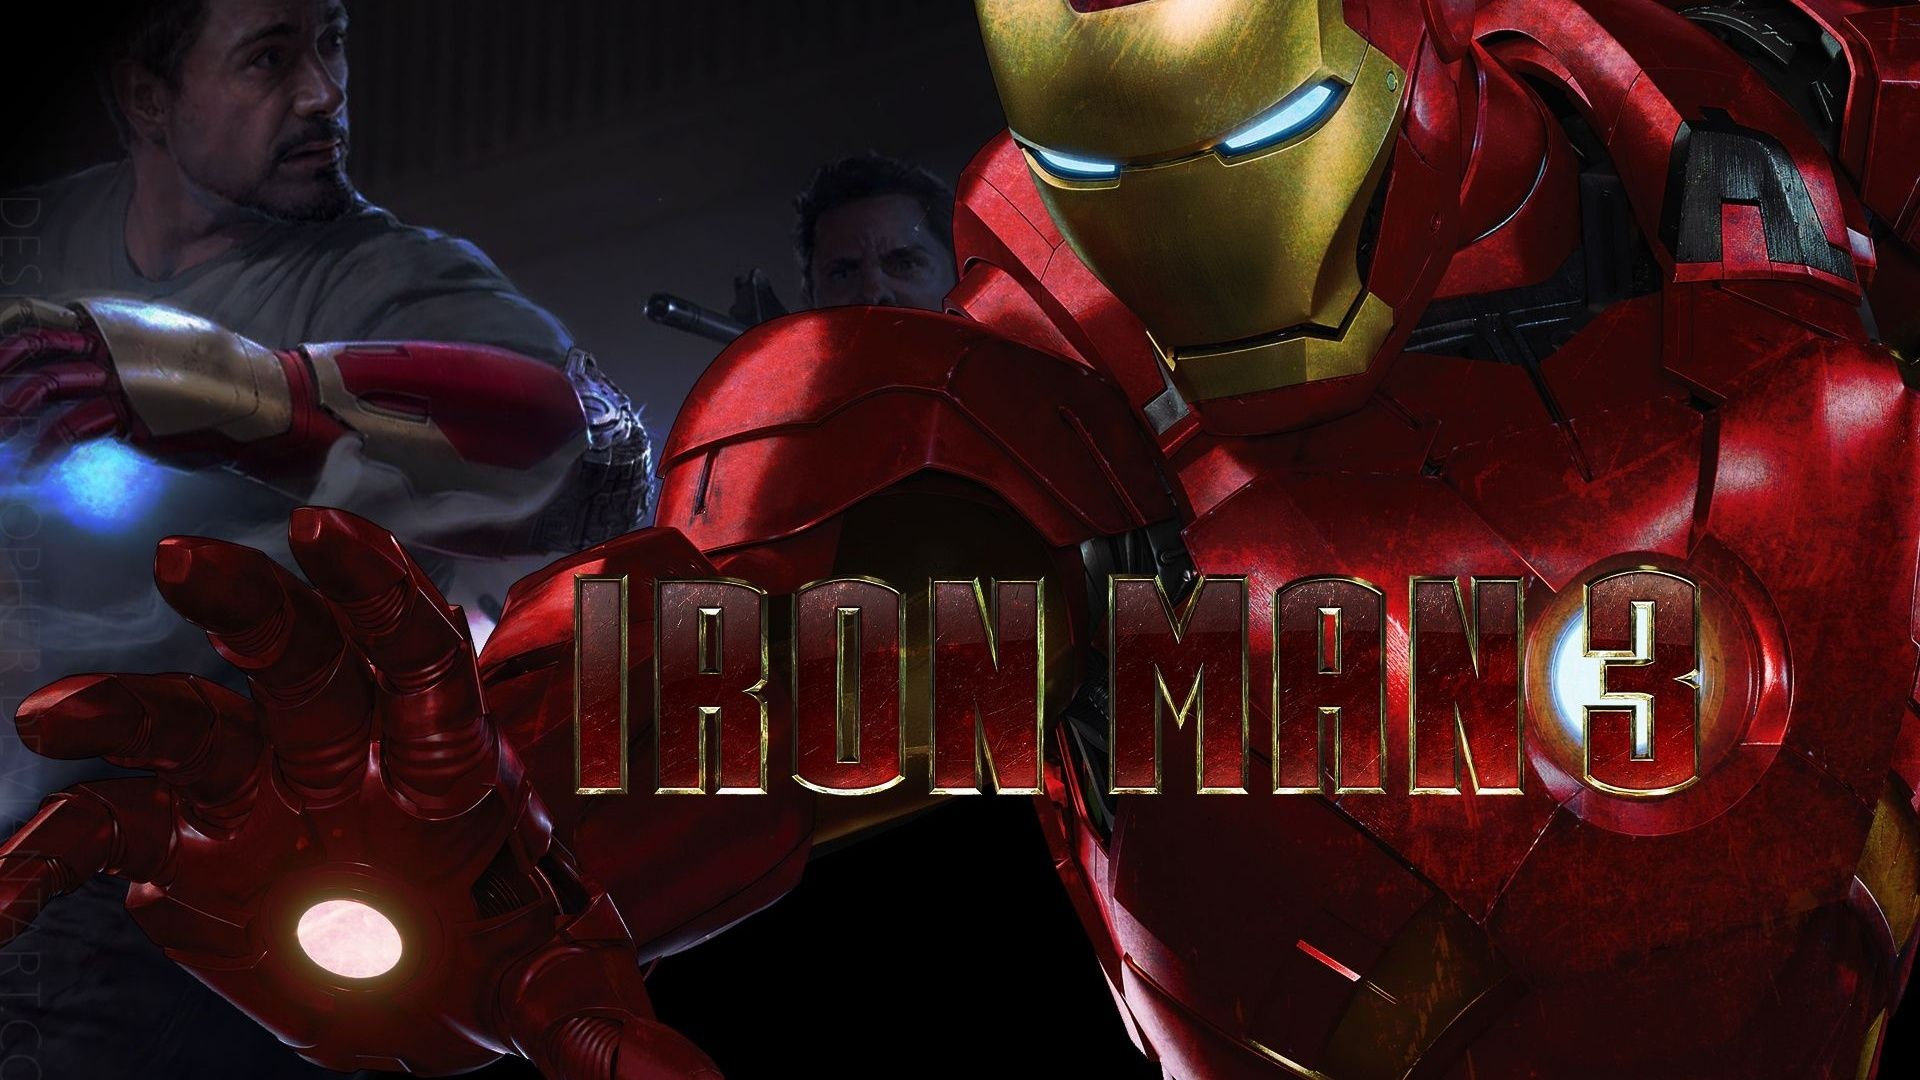 wallpapers collection airon man hd wallpapersa 1920a—1200 iron man images wallpapers